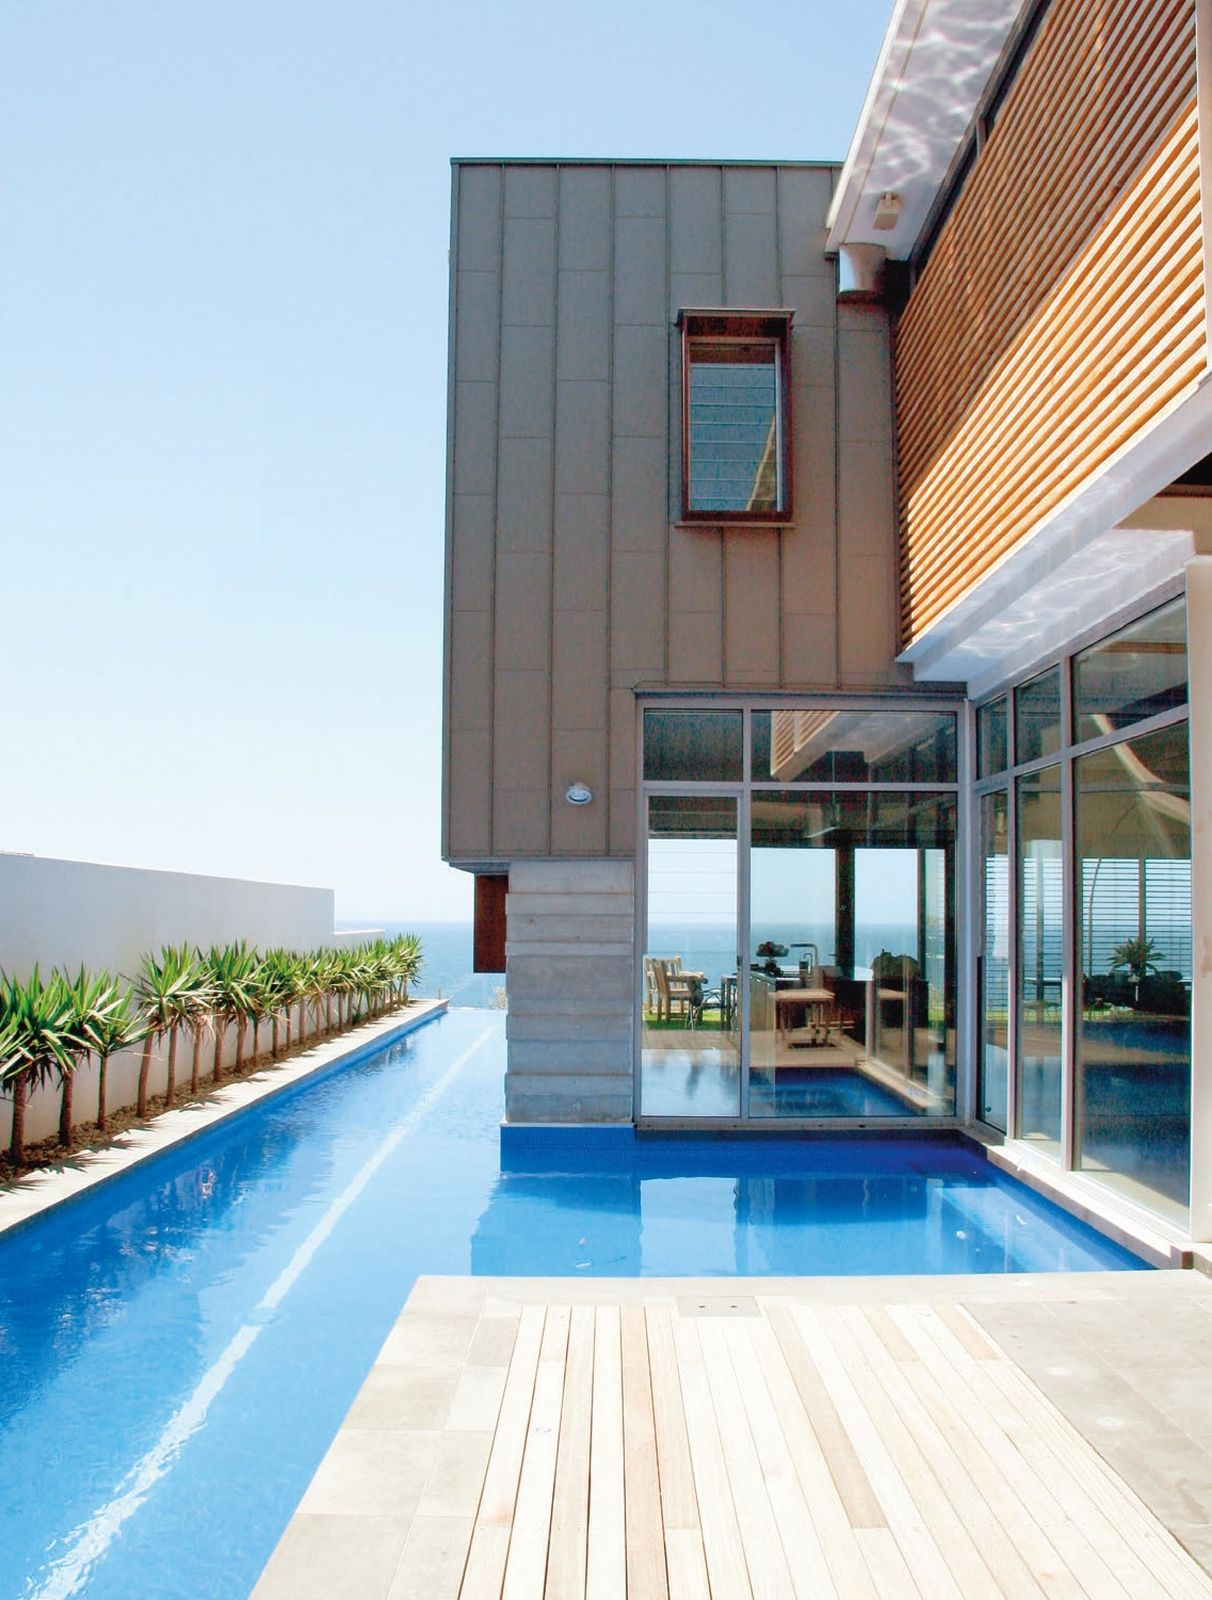 Dwell - Pools We Love Collection